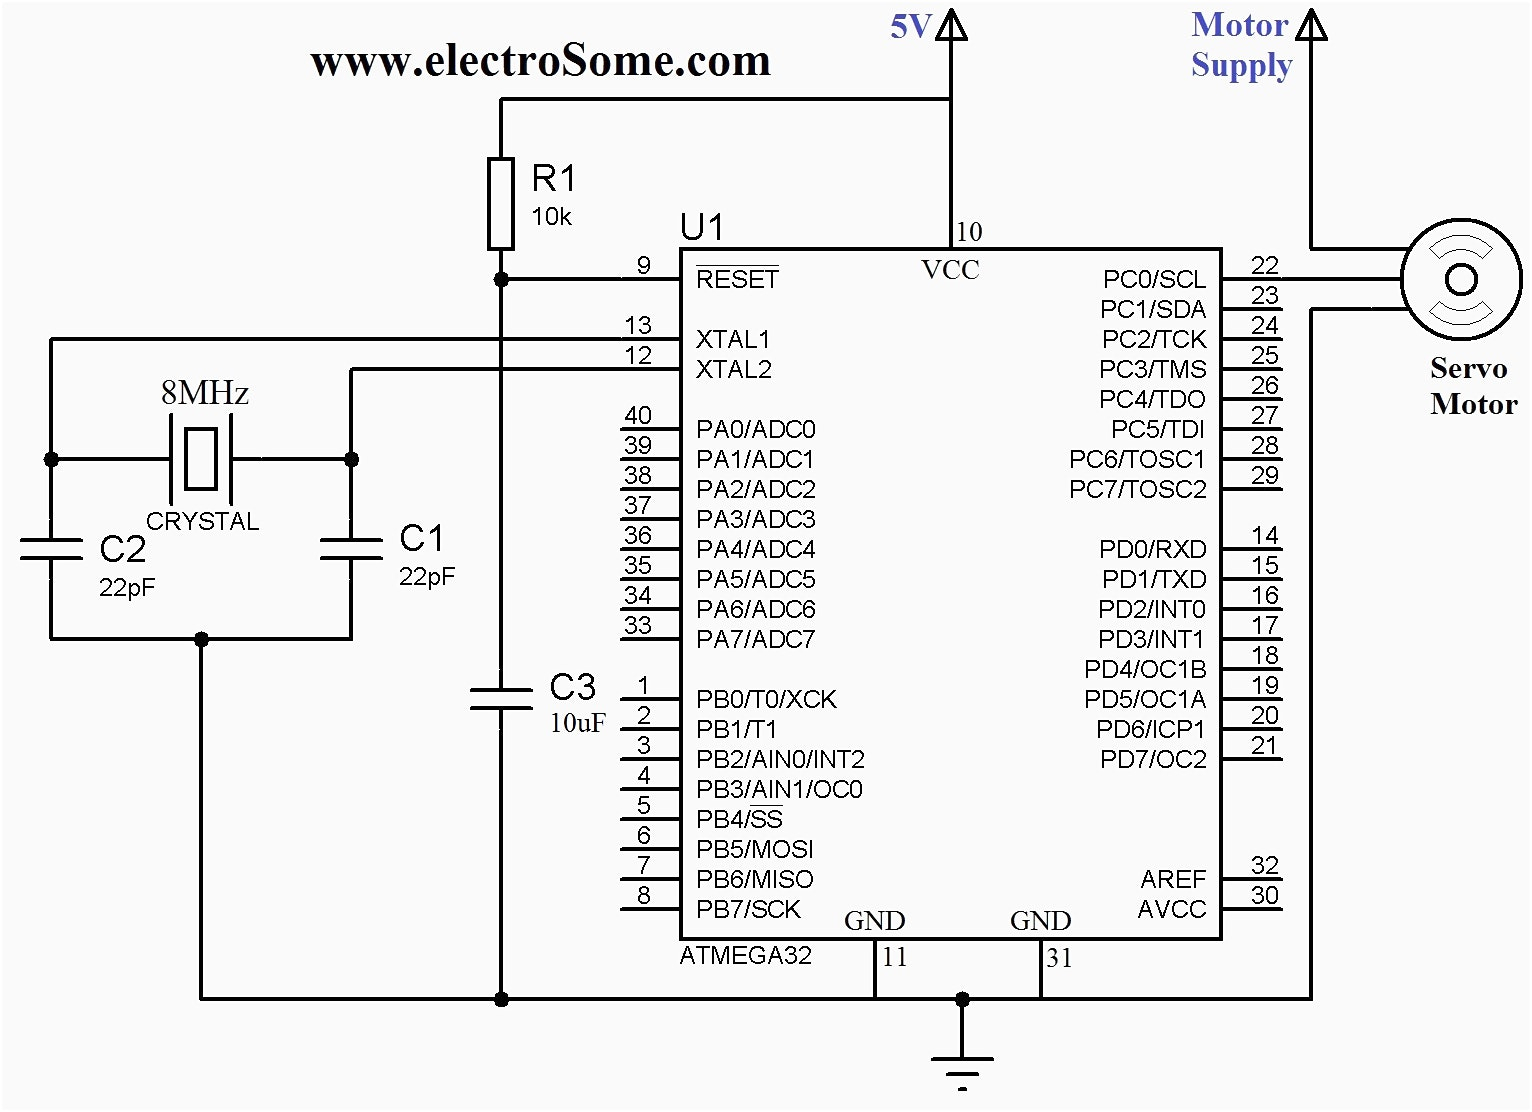 Ge Furnace Blower Motor Wiring Diagram Gallery Sample Download Ao Smith At